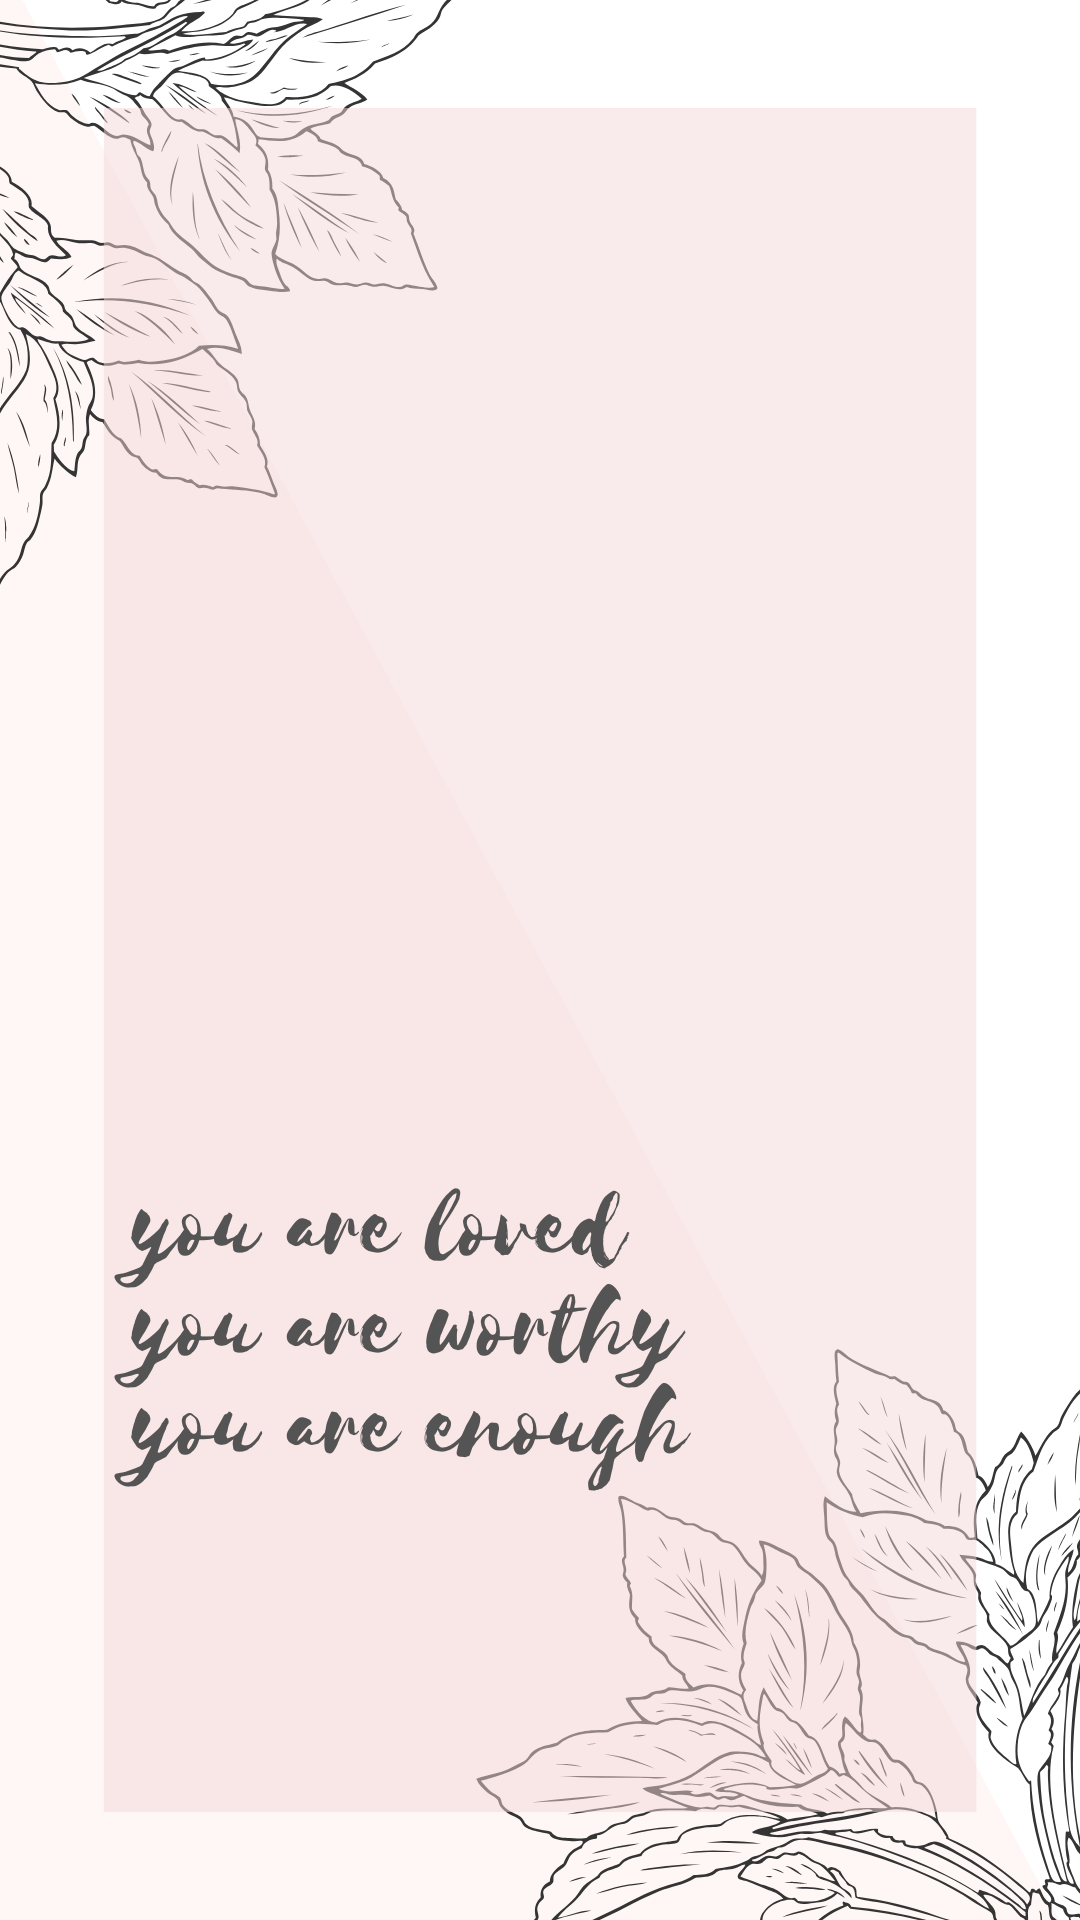 iphone wallpaper   Worthy quotes, Art mom background, Art mom ...